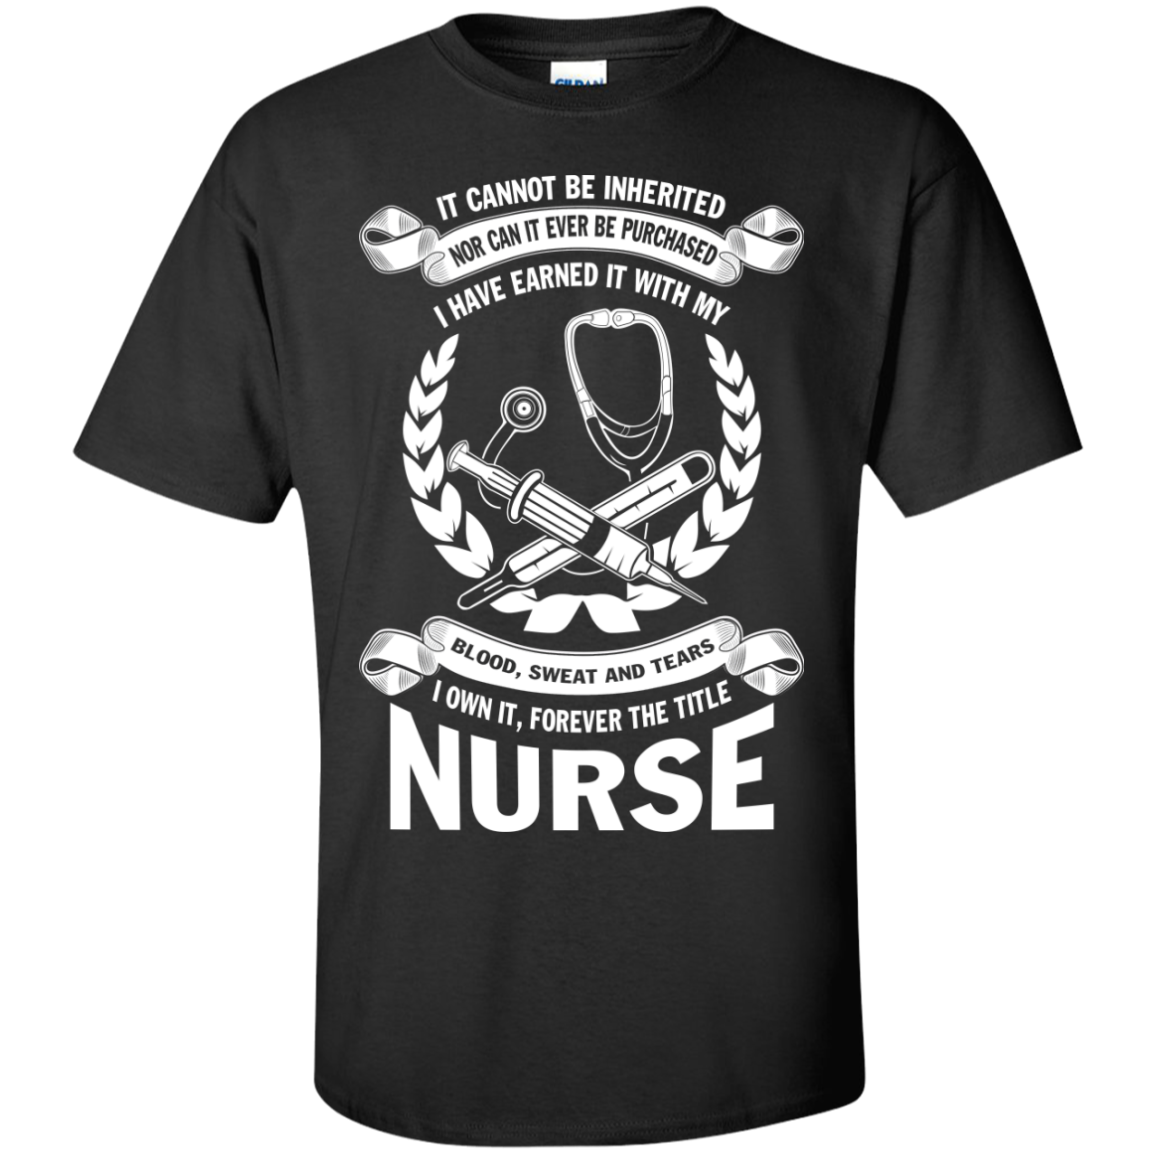 It Cannot Be Inherited Nor Can It Ever Be Purchased I Have Earned It With My Blood Sweat And Tears I Own It Forever The Title Nurse